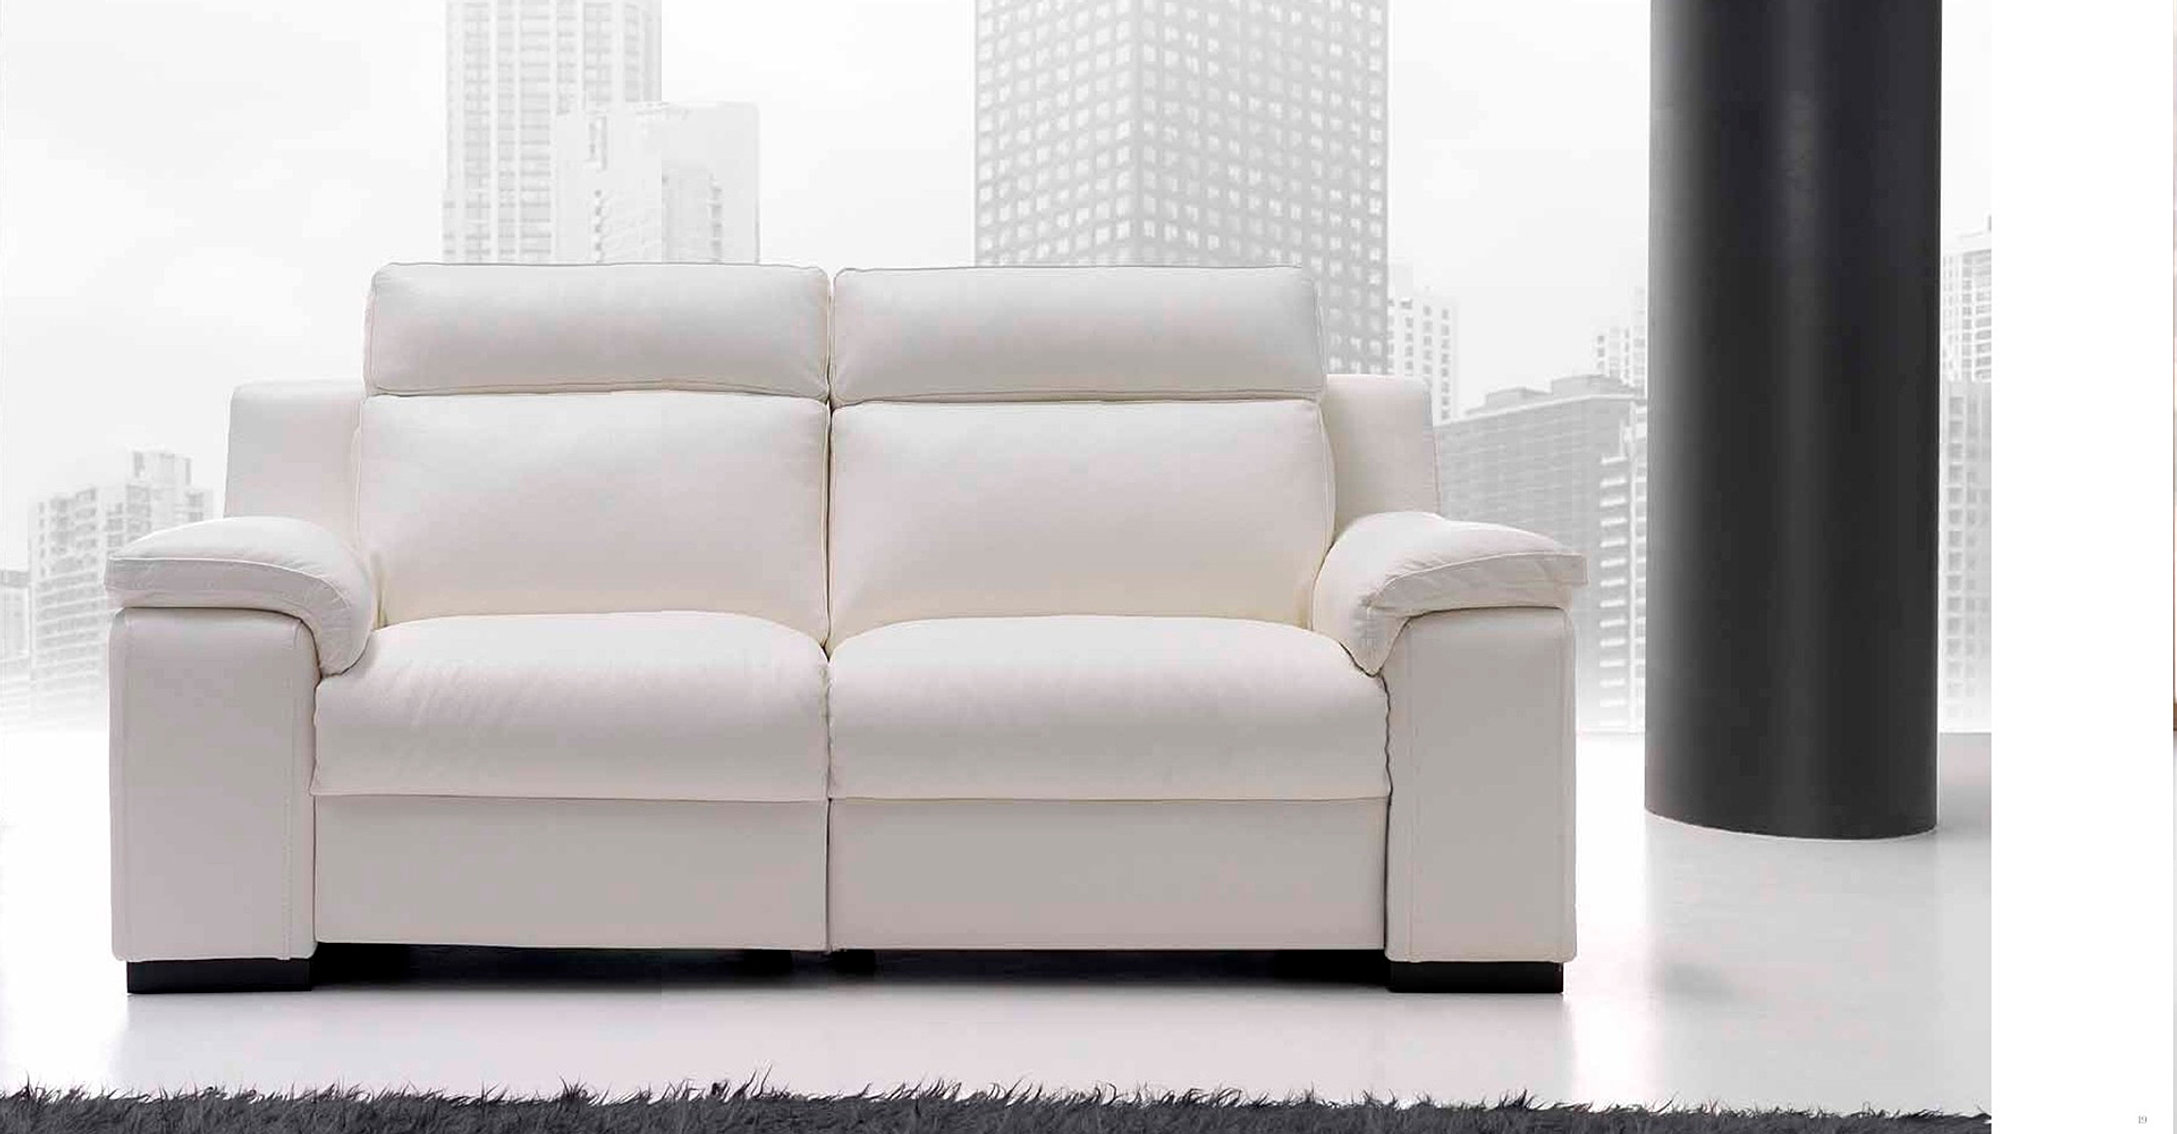 Sofas de dise o muebles monen madrid for Muebles diseno madrid